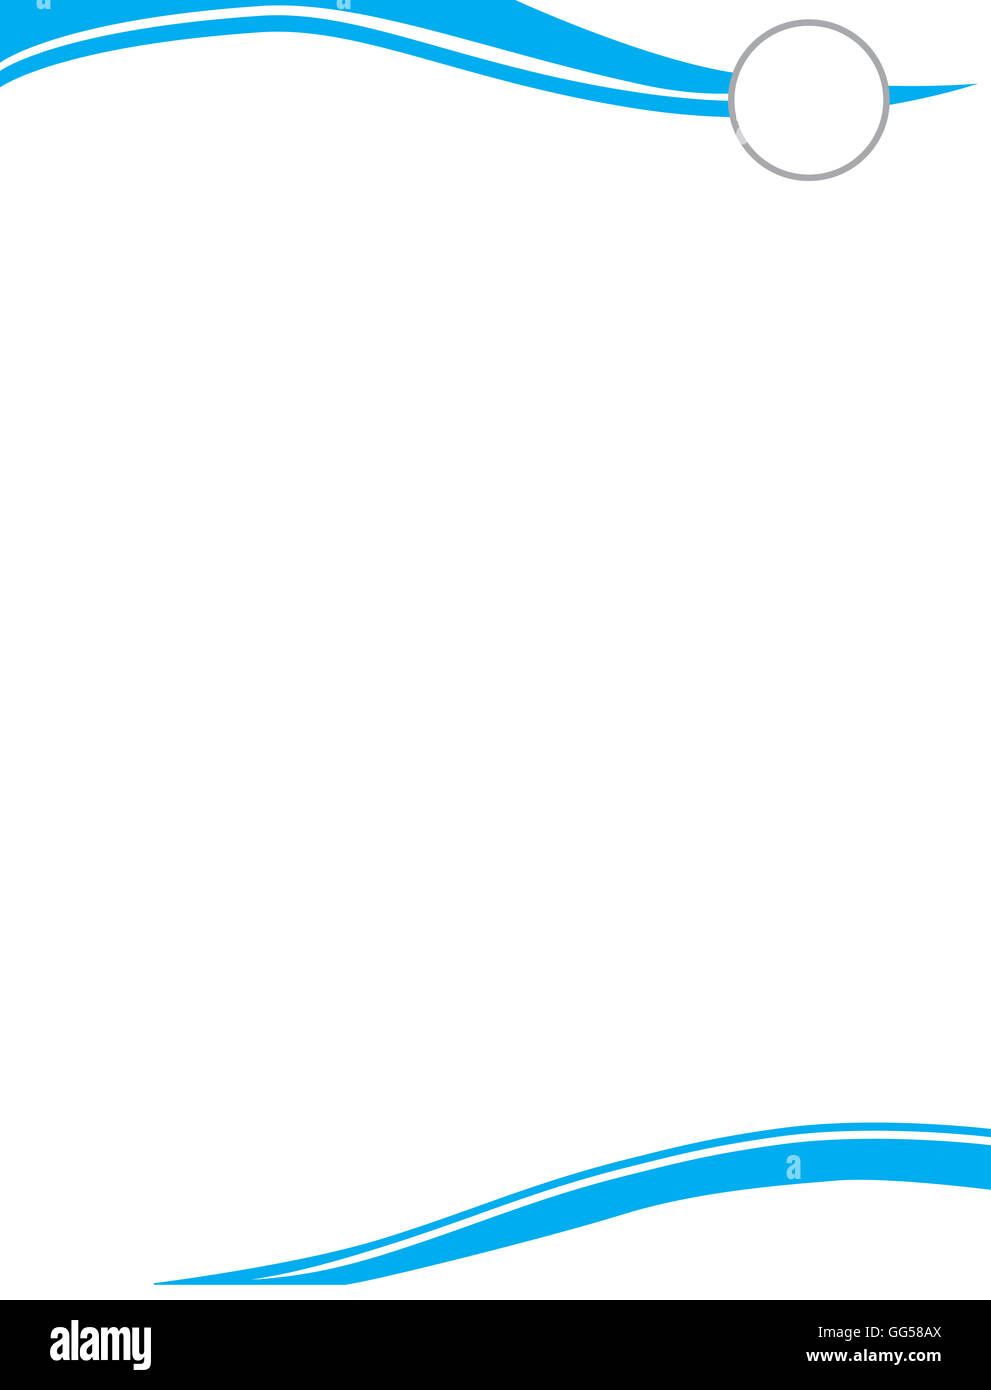 Cyan Wave Letterhead Template with Circle for Logo - Stock Image